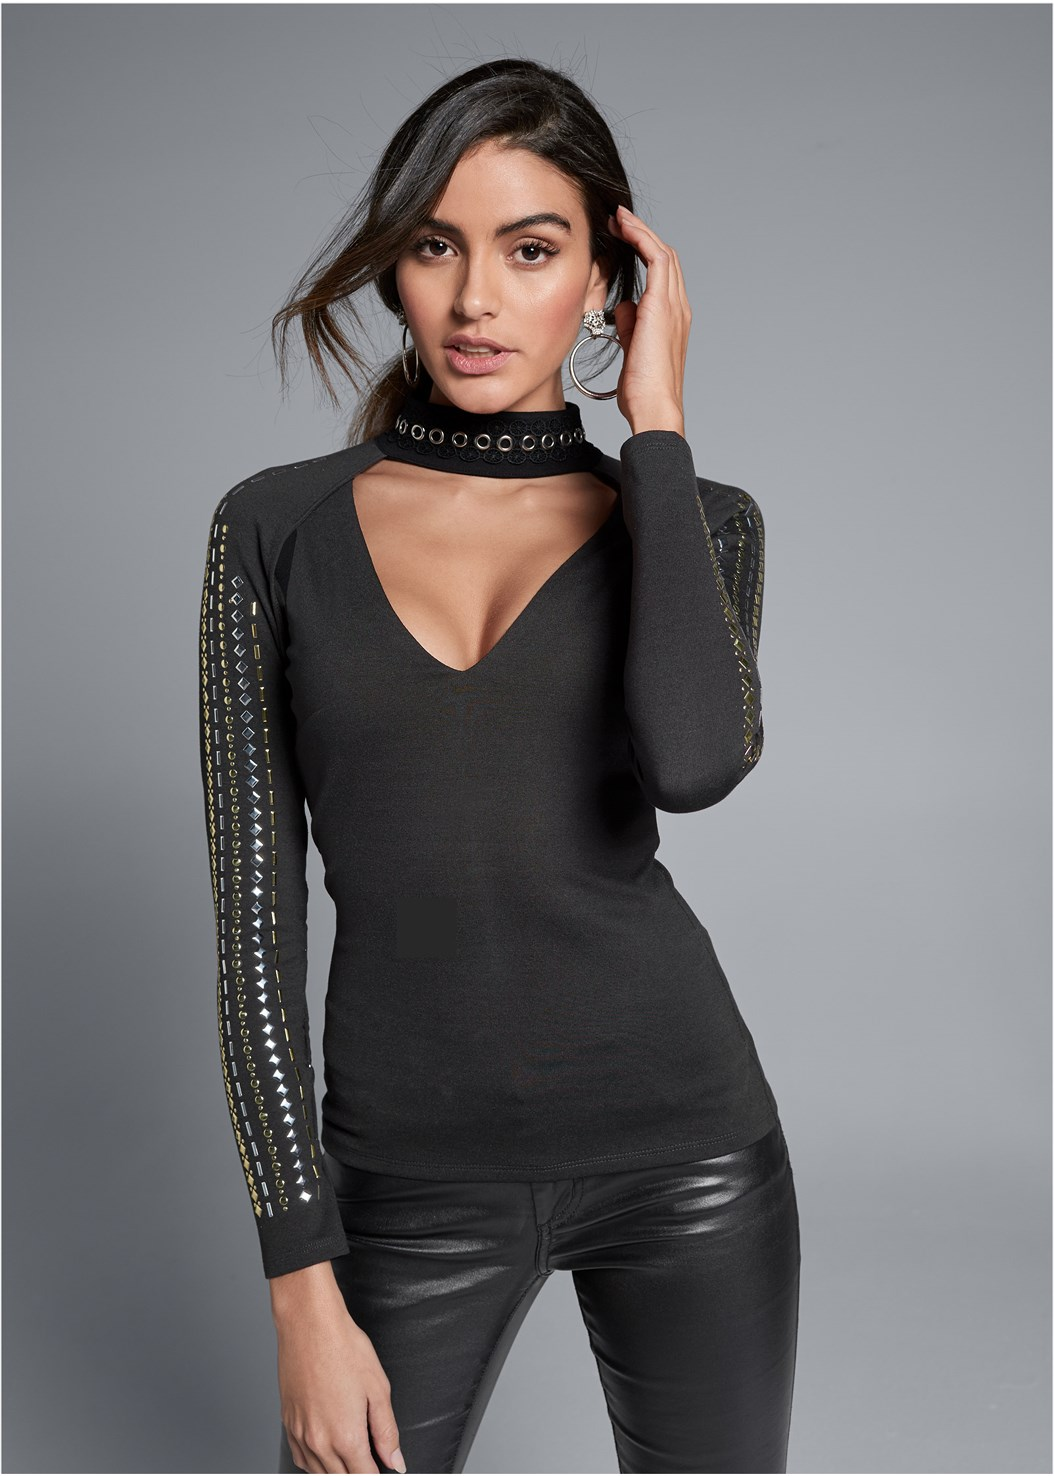 Embellished Mock Neck Top,Faux Leather Pants,Kissable Convertible Bra,Slouchy Mid-Calf Boot,Buckle Detail Booties,Tiger Detail Earrings